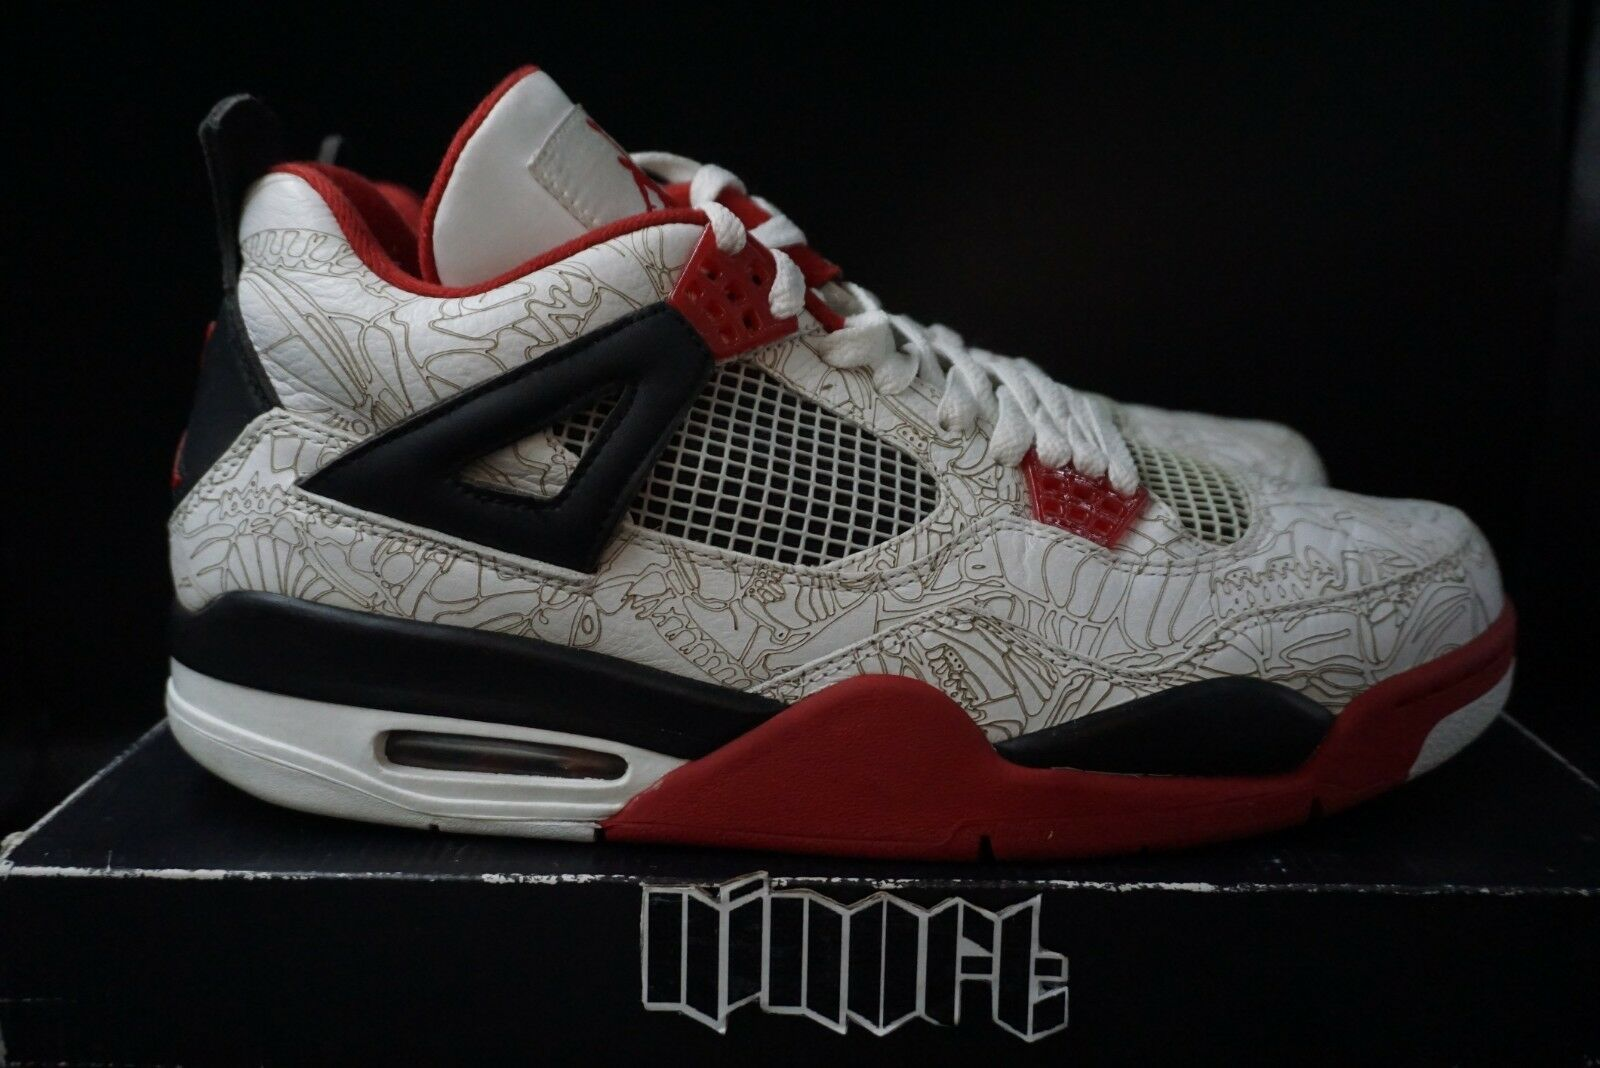 Air Jordan IV 4 Retro Weiß Laser 308497-161 fire rot